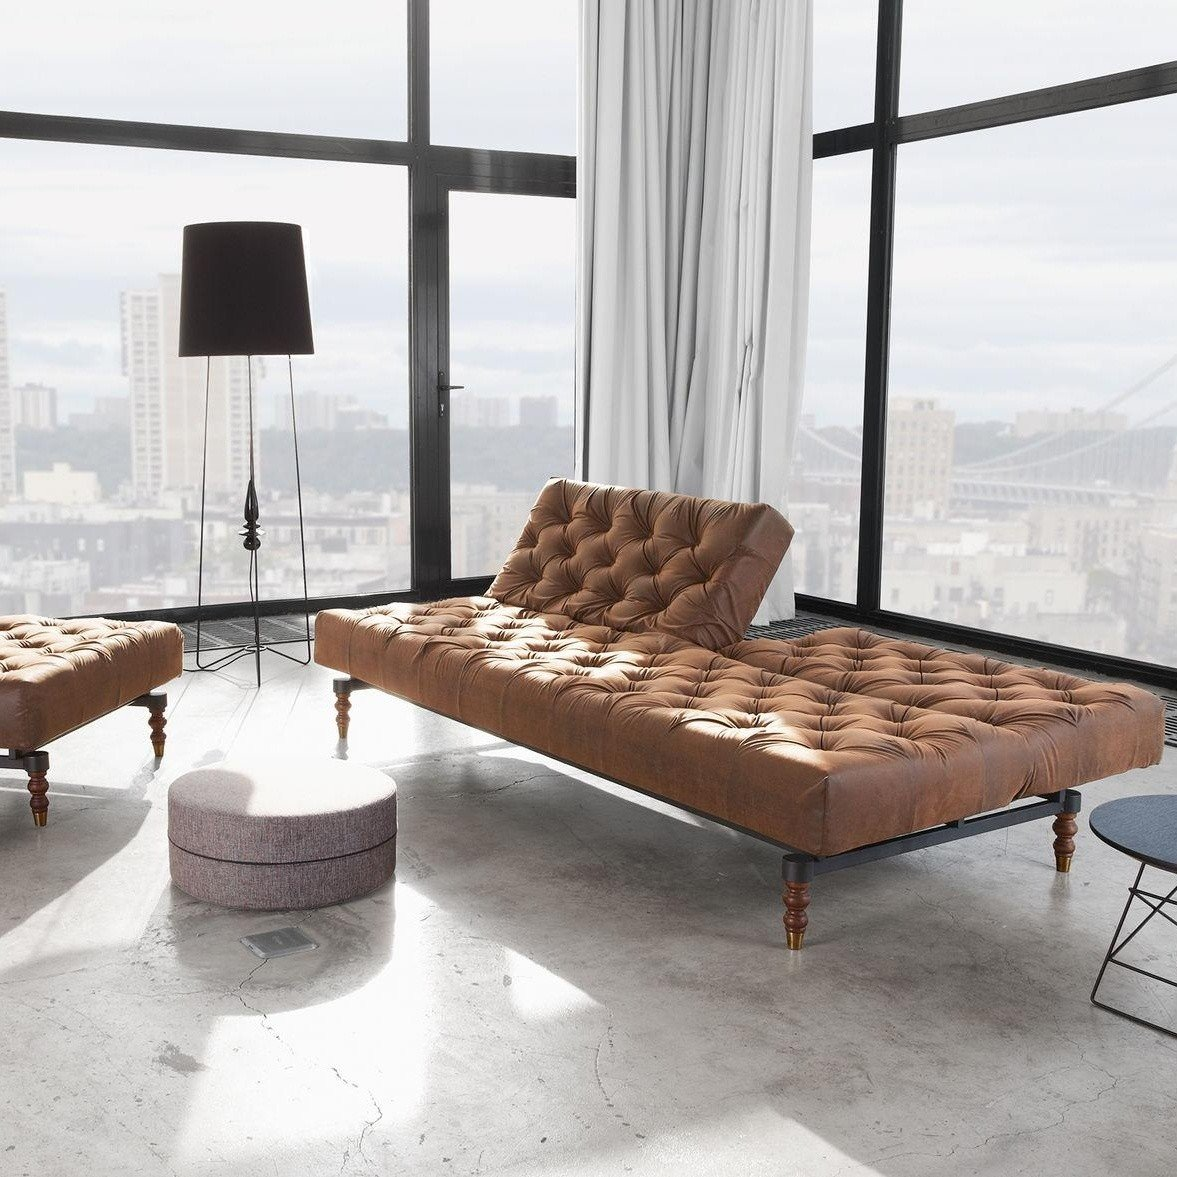 Inspirierend Retrosofa Ideen Von Innovation - Oldschool Retro Sofa Bed